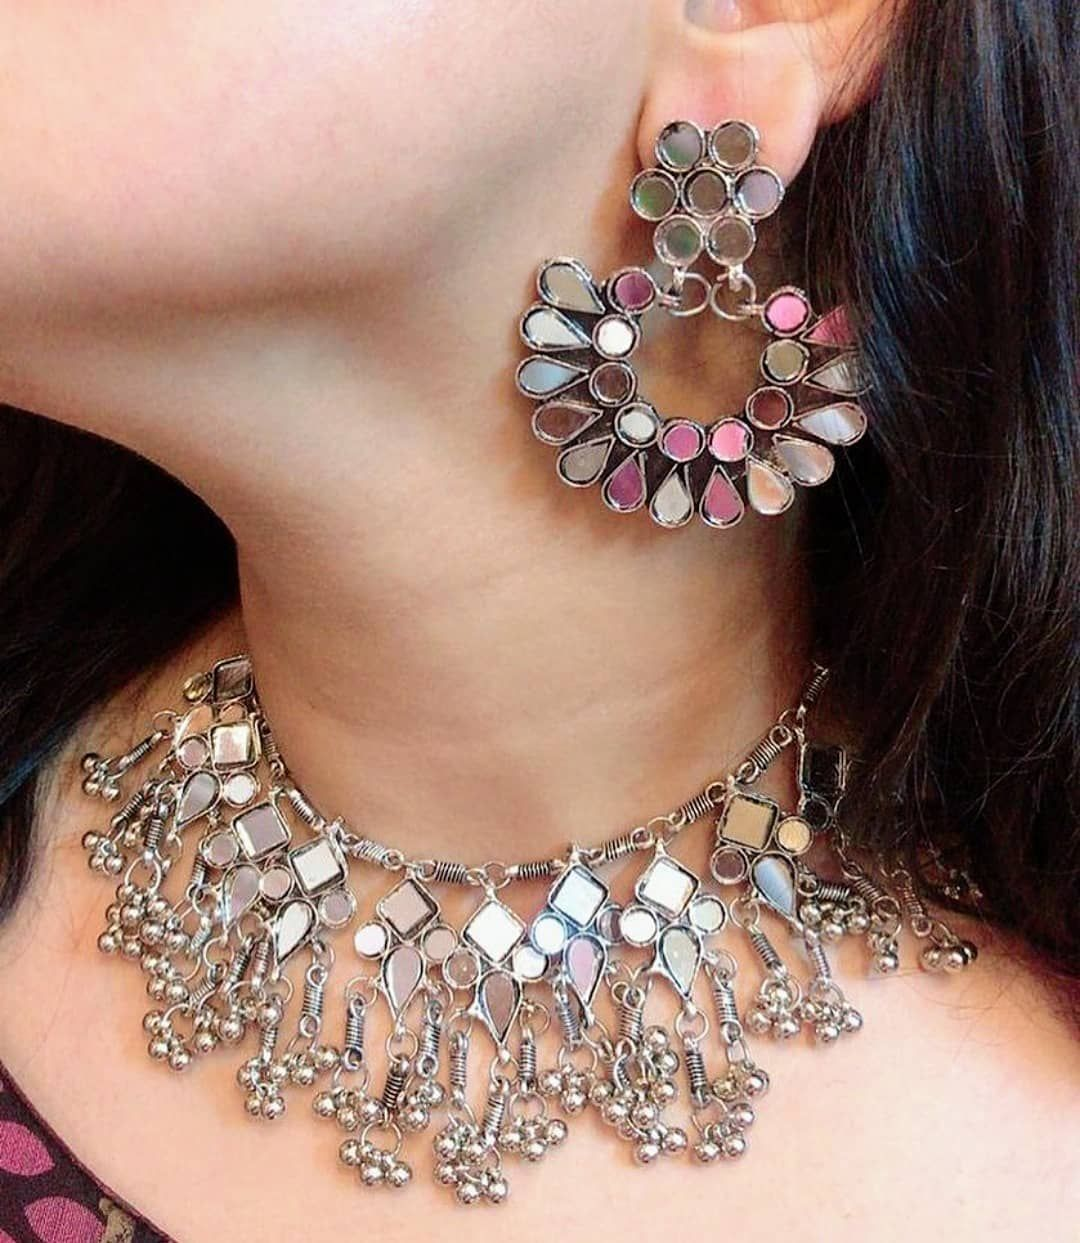 12+ Where can i buy good quality jewelry ideas in 2021